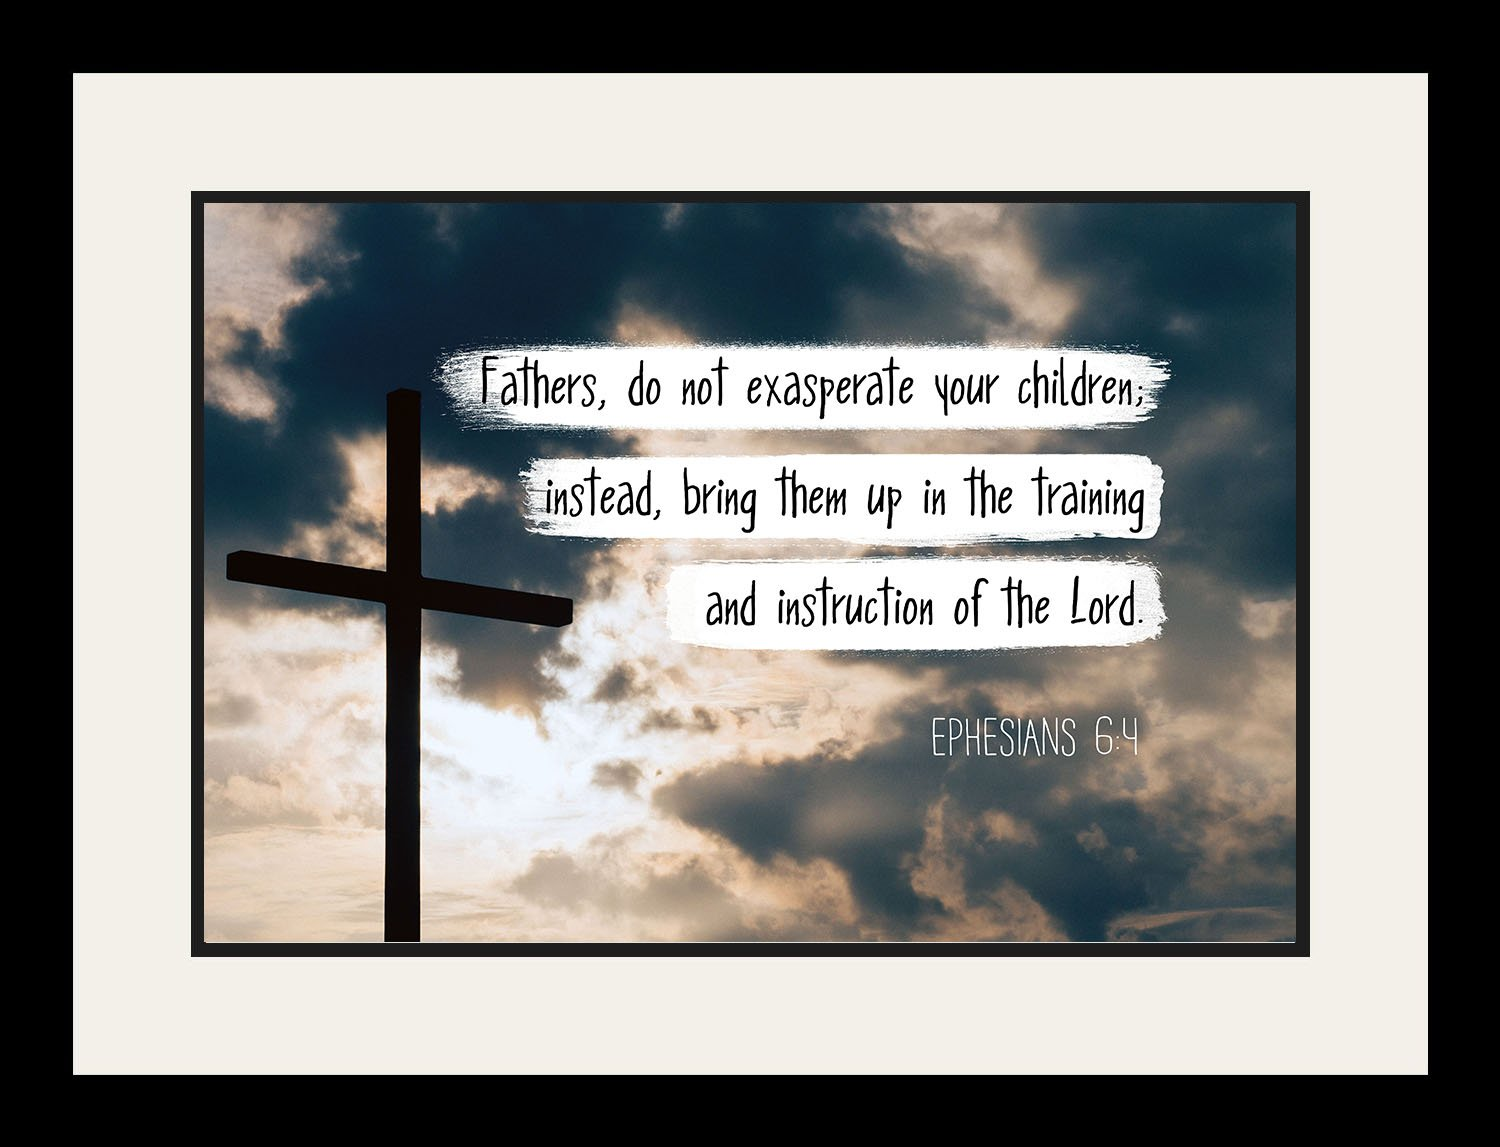 Ephesians 6:4 Fathers, do not exasperate - Christian Poster, Print, Picture or Framed Wall Art Decor - Bible Verse Collection - Religious Gift for Holidays Christmas Baptism (19x25 Framed)